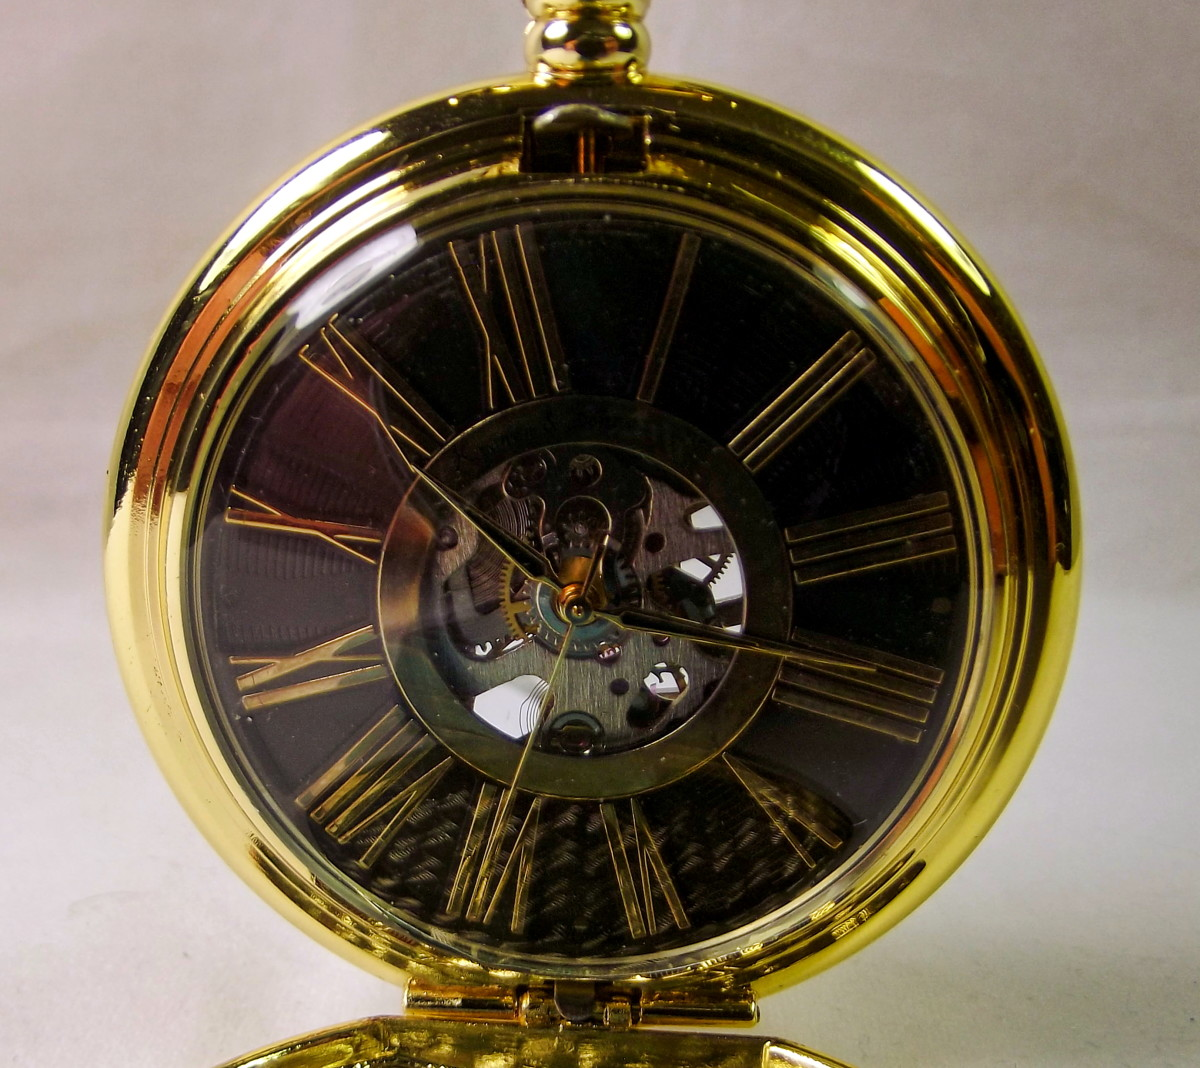 Kronen & Söhne KSP034 Mechanical Pocket Watch.  Note that neither the dial nor the hands are properly aligned.